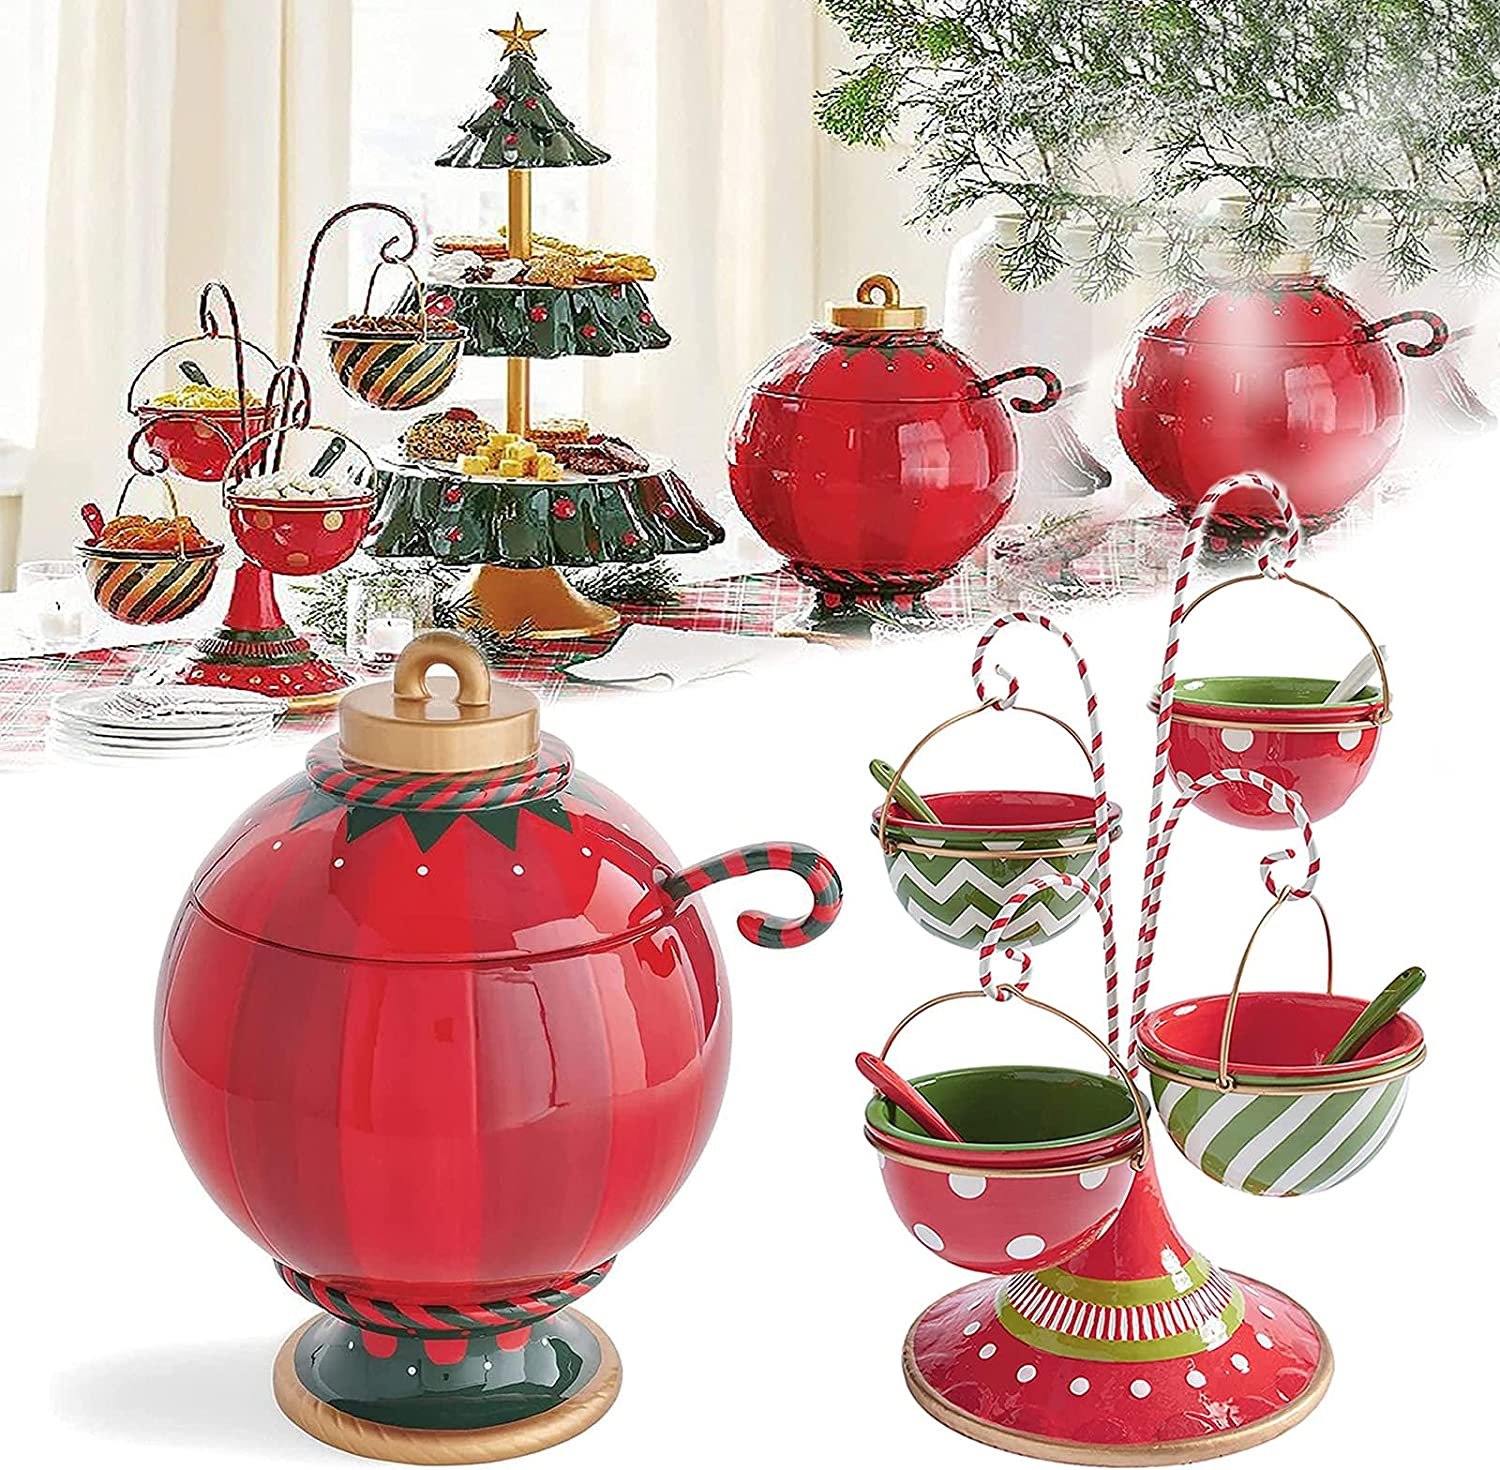 KCRPM Be Merry Snack Bowl Stand, Christmas Snack Serving Stand, Whimsical Style for Buffet or Table Four Bowls Snack Stand, Dessert Stands Fruit Plates for Christmas Halloween Party Decorations (A+B) : Home & Kitchen